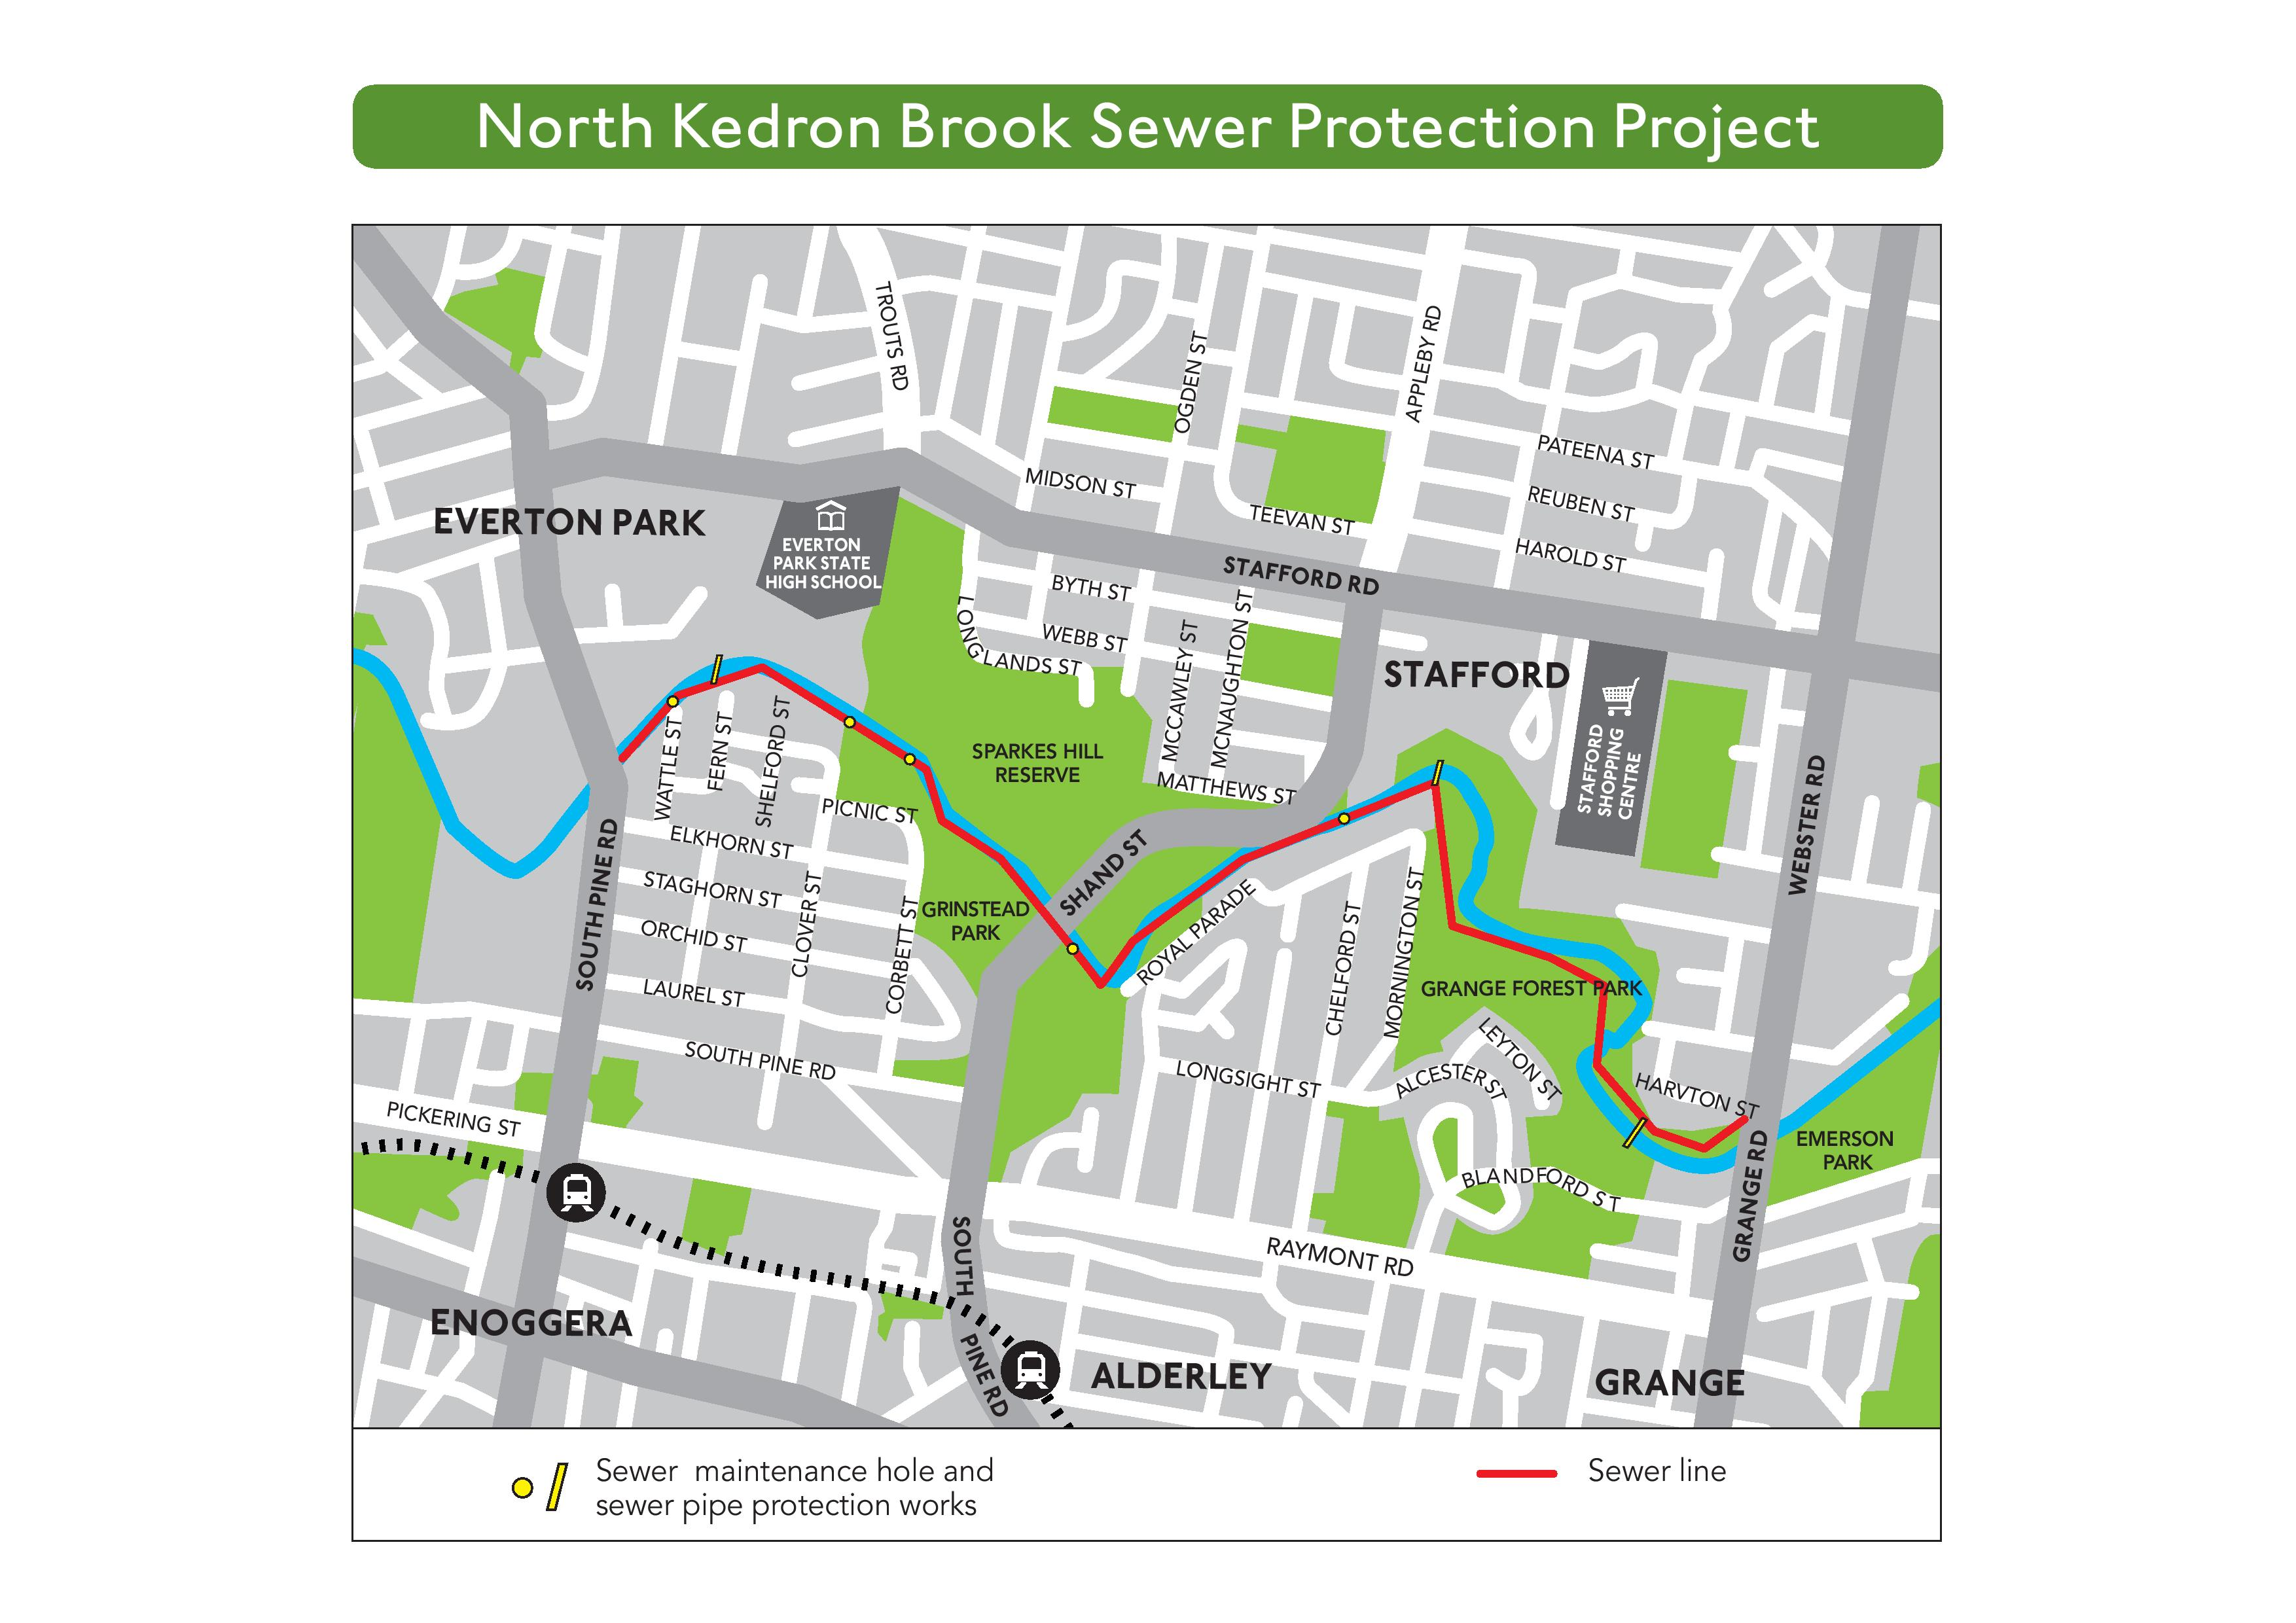 A map showing project work locations for the North Kedron Brook Sewer Protection Project